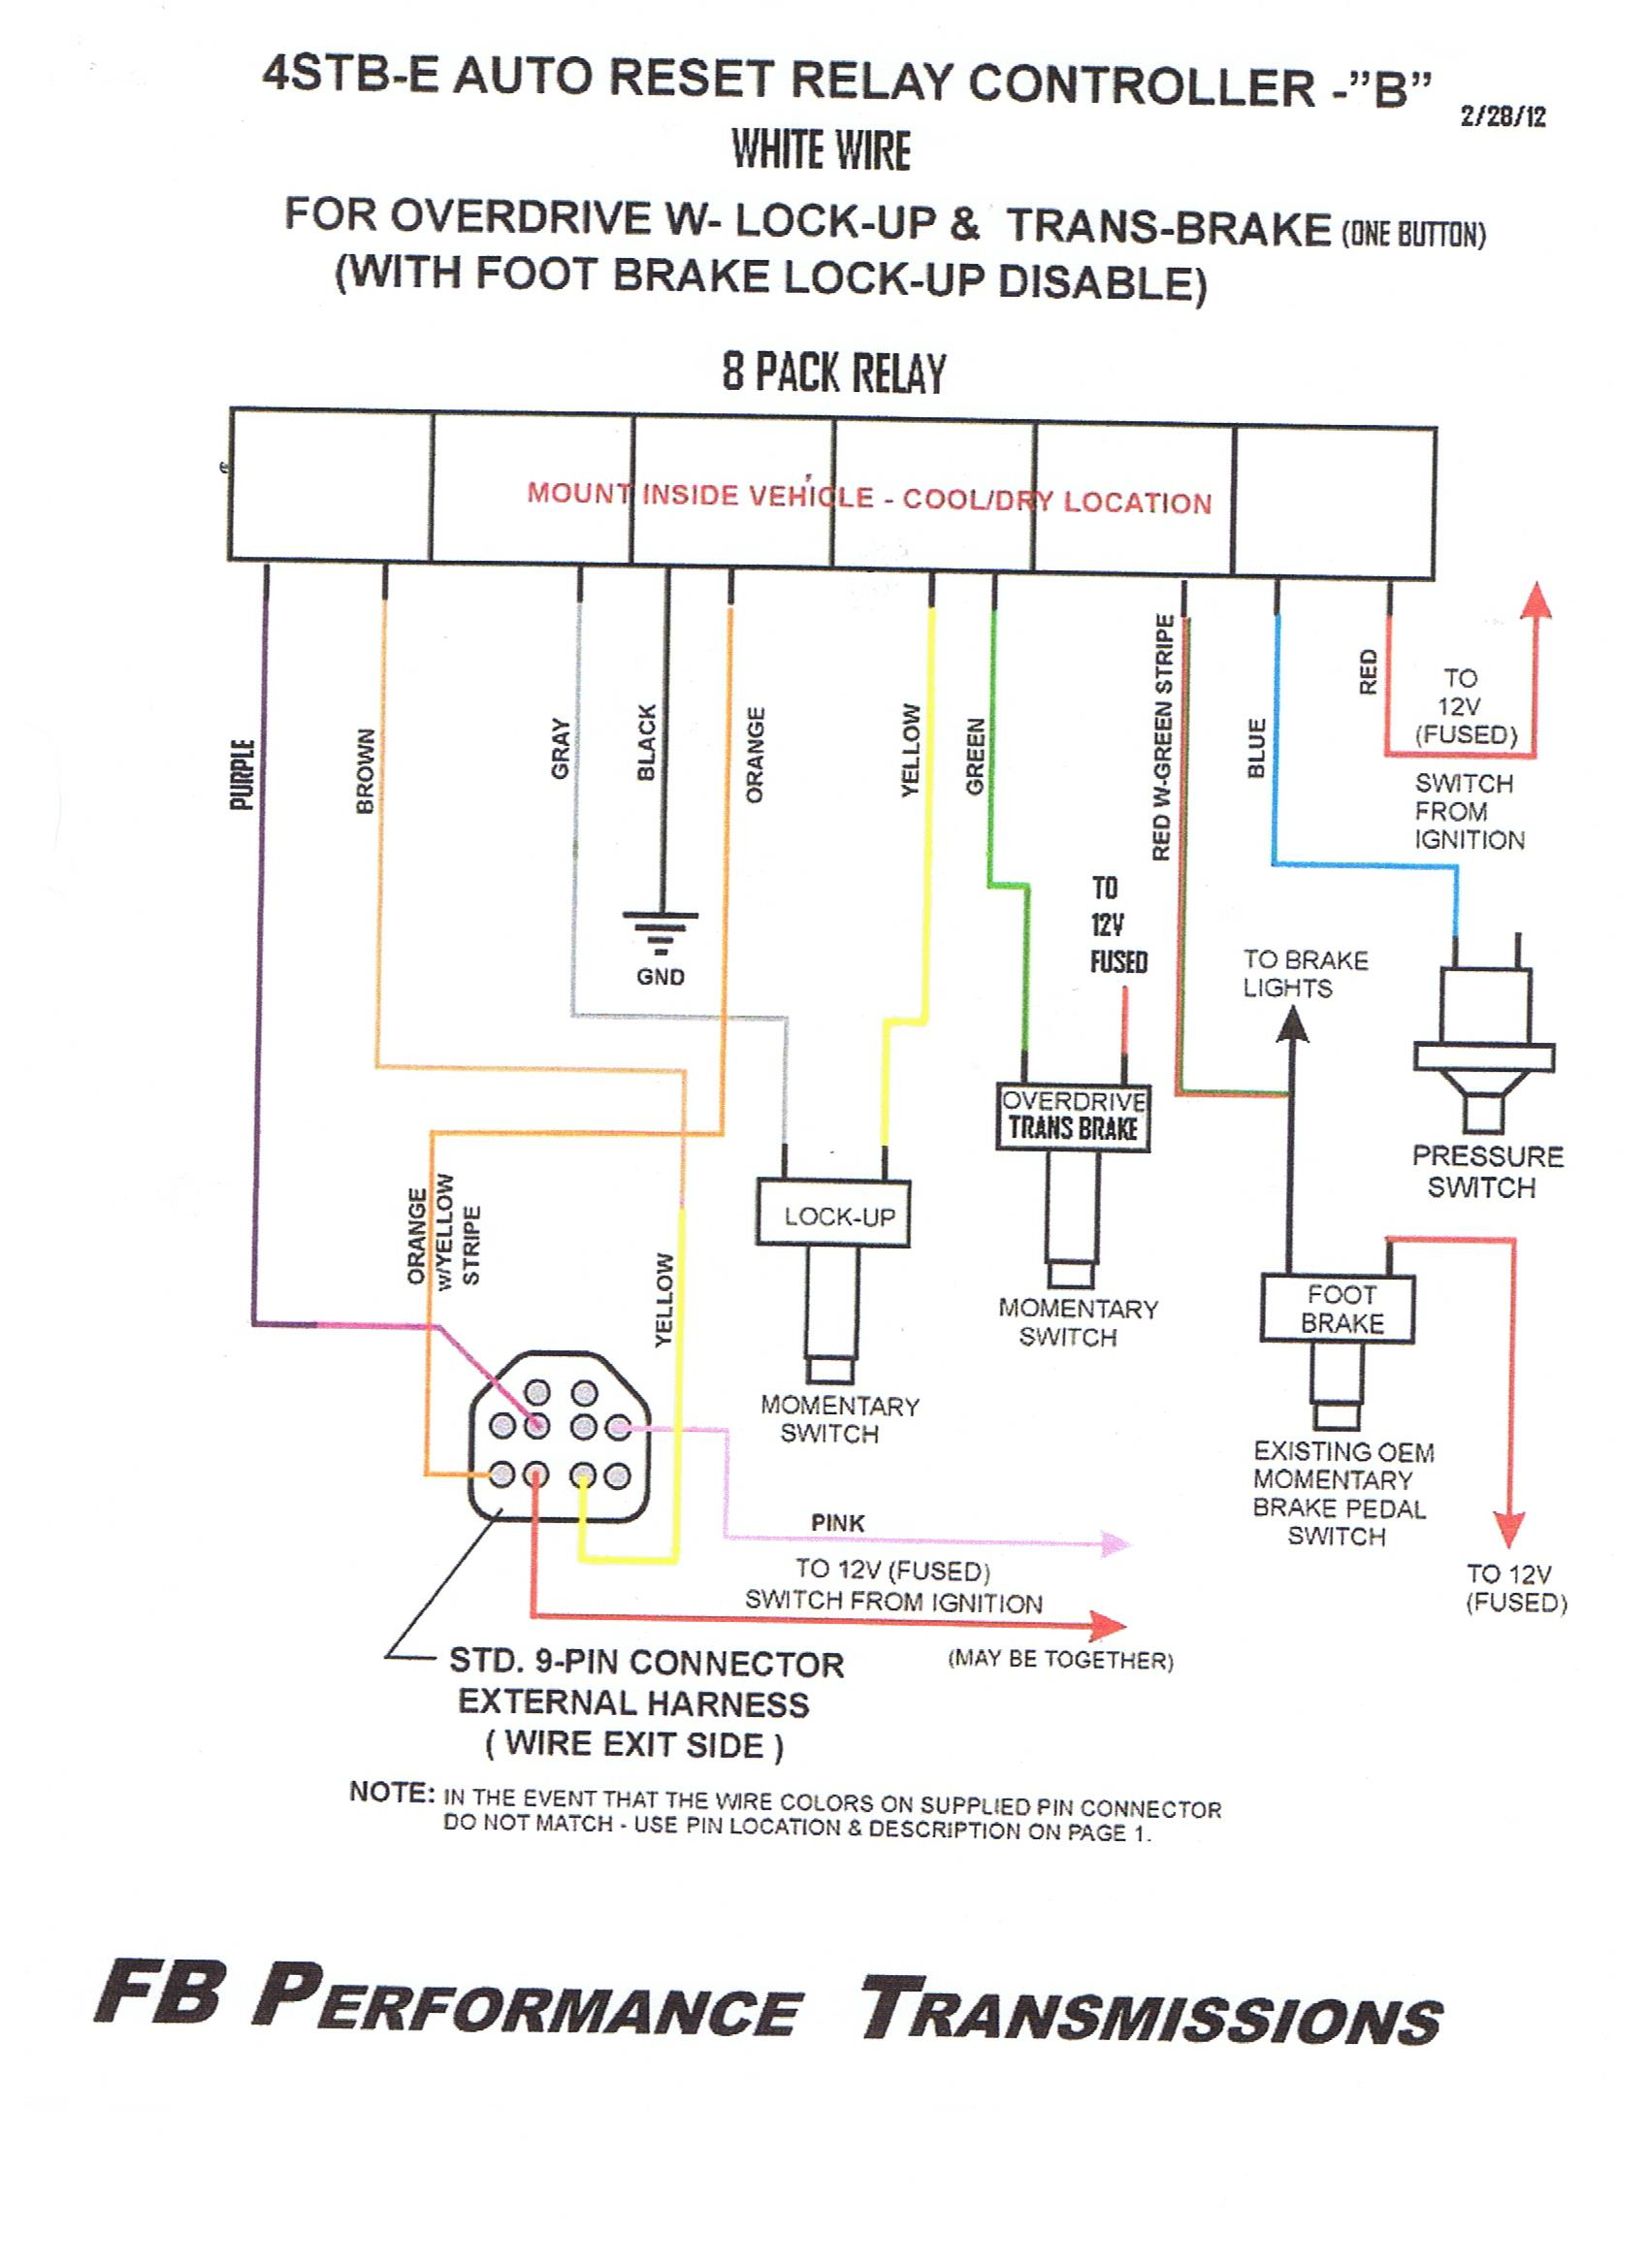 And wiring suggested wiring diagram with safety lock out relay and wiring suggested wiring diagram with safety lock out relay images gallery special instructions for the 4stb e transmission rh fbperformance com asfbconference2016